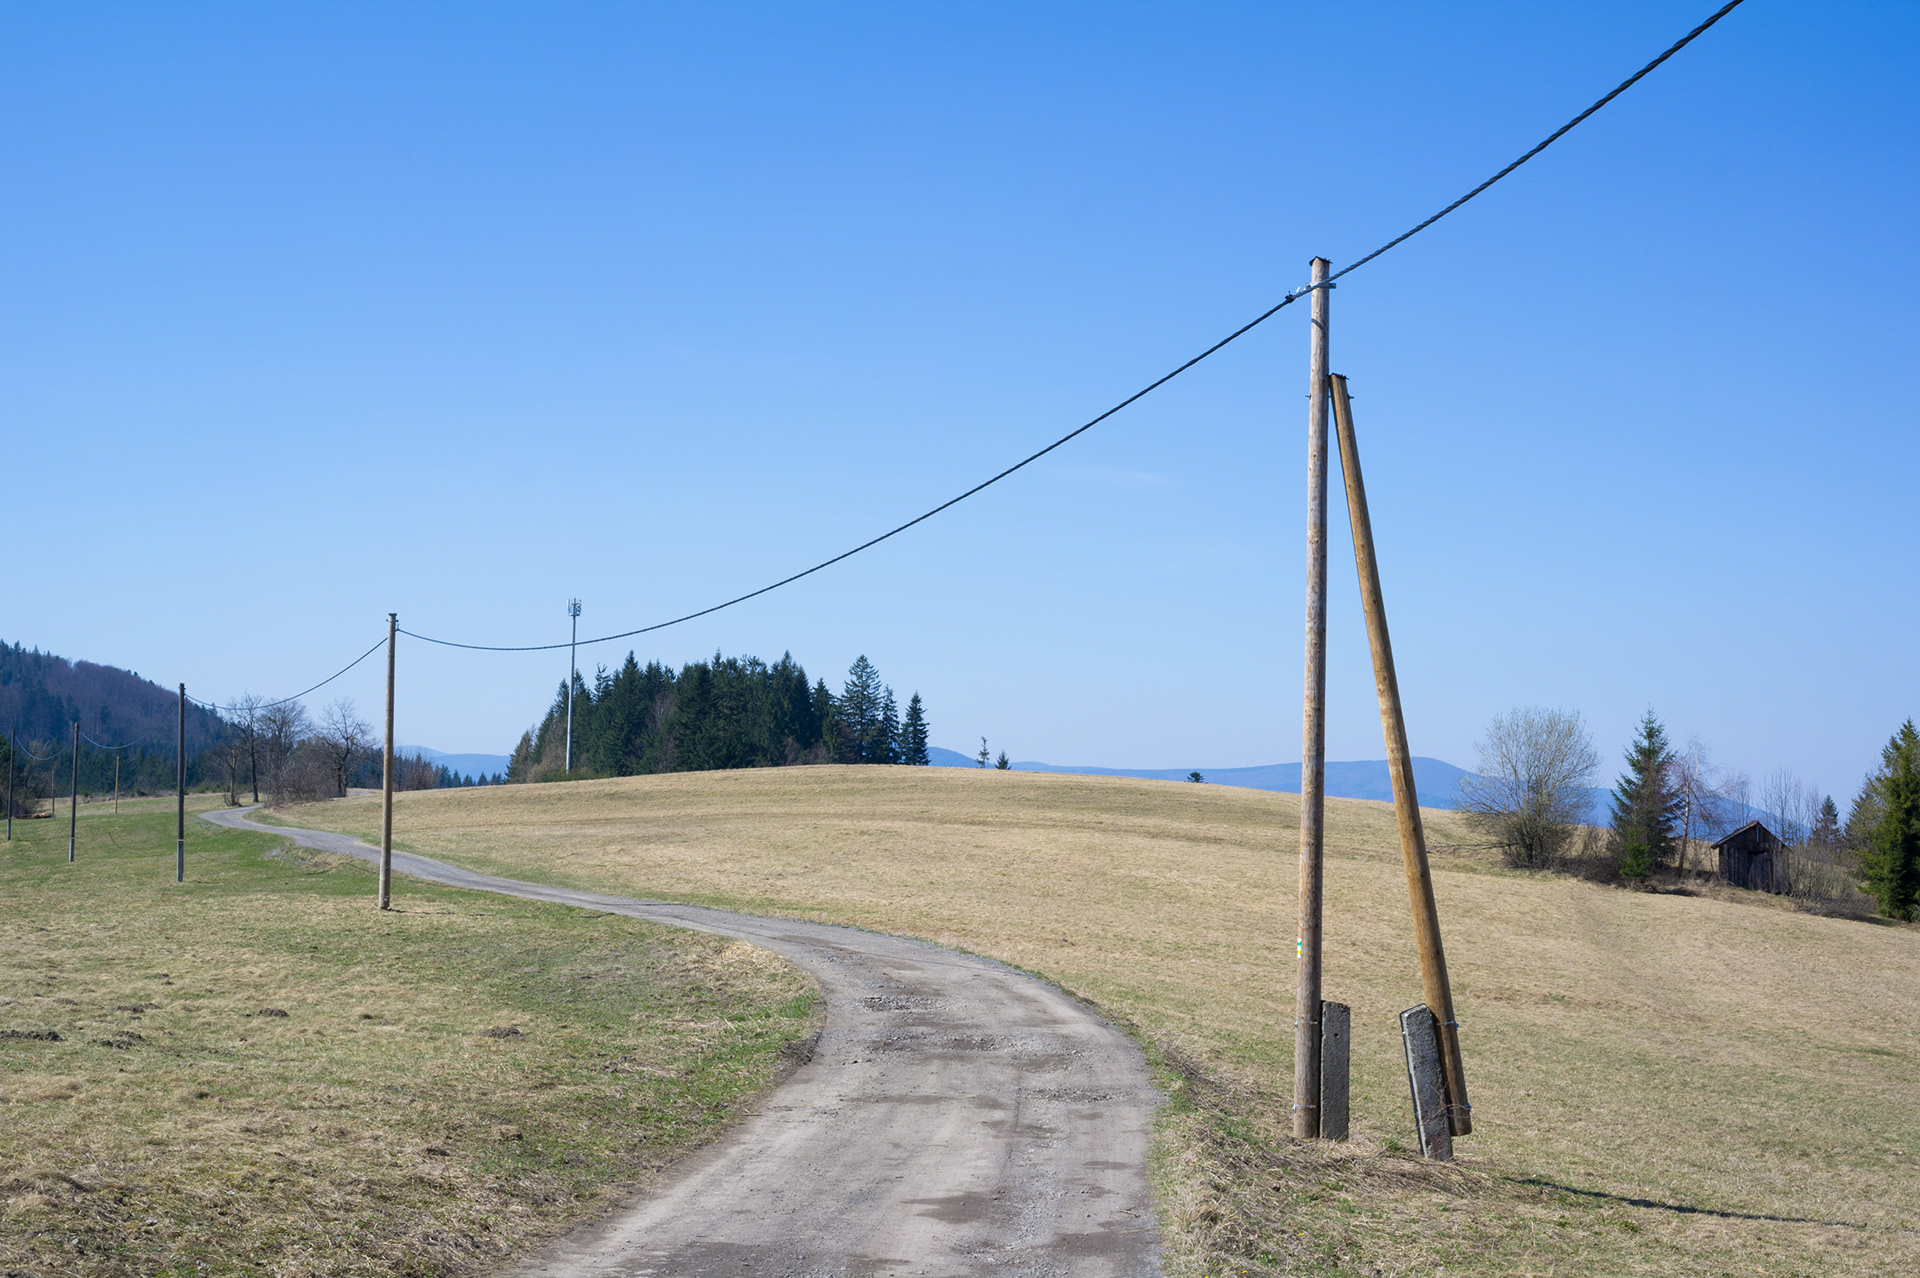 Rural area of field path and utility electrical power pole in early spring, Komorovský Grúň, Beskid mountains, Czech Republic